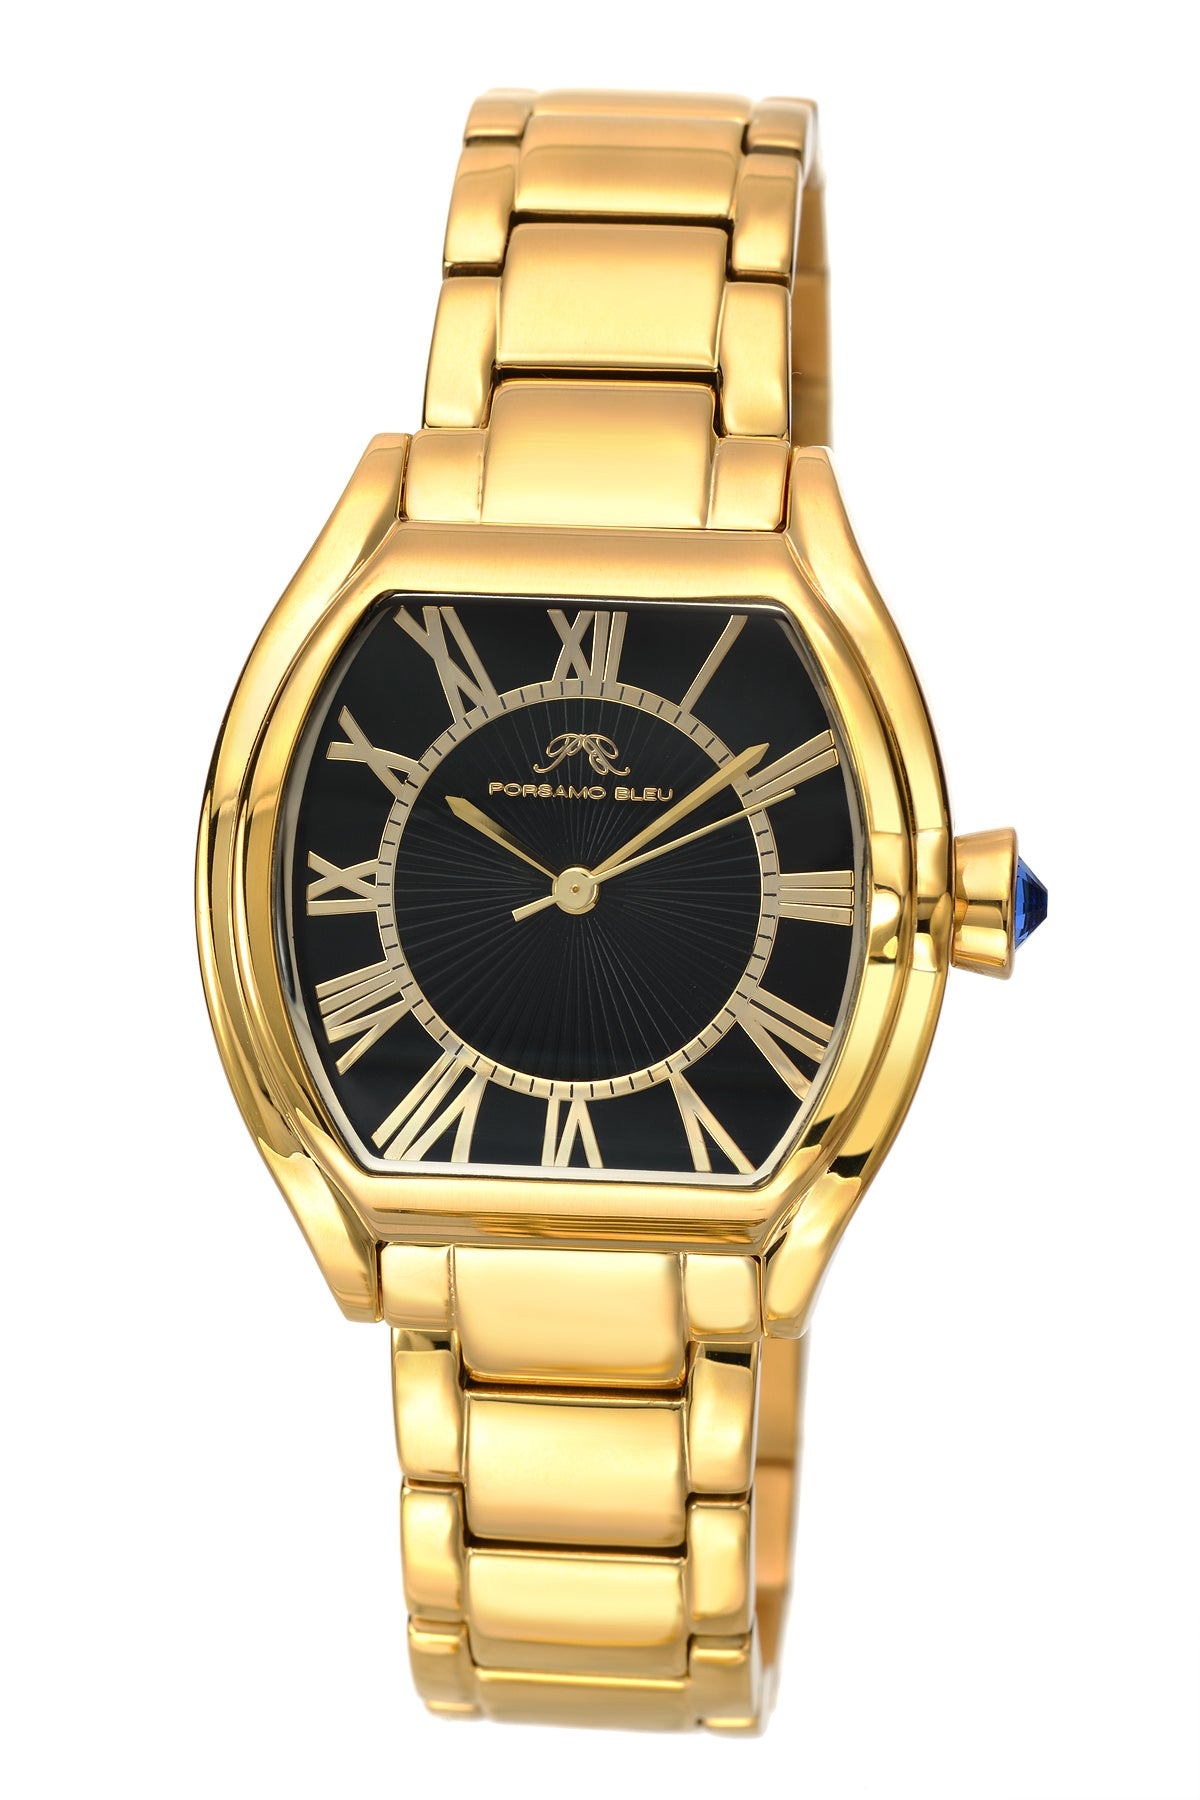 Porsamo Bleu Isabel luxury women's stainless steel watch, gold, black 181BISS